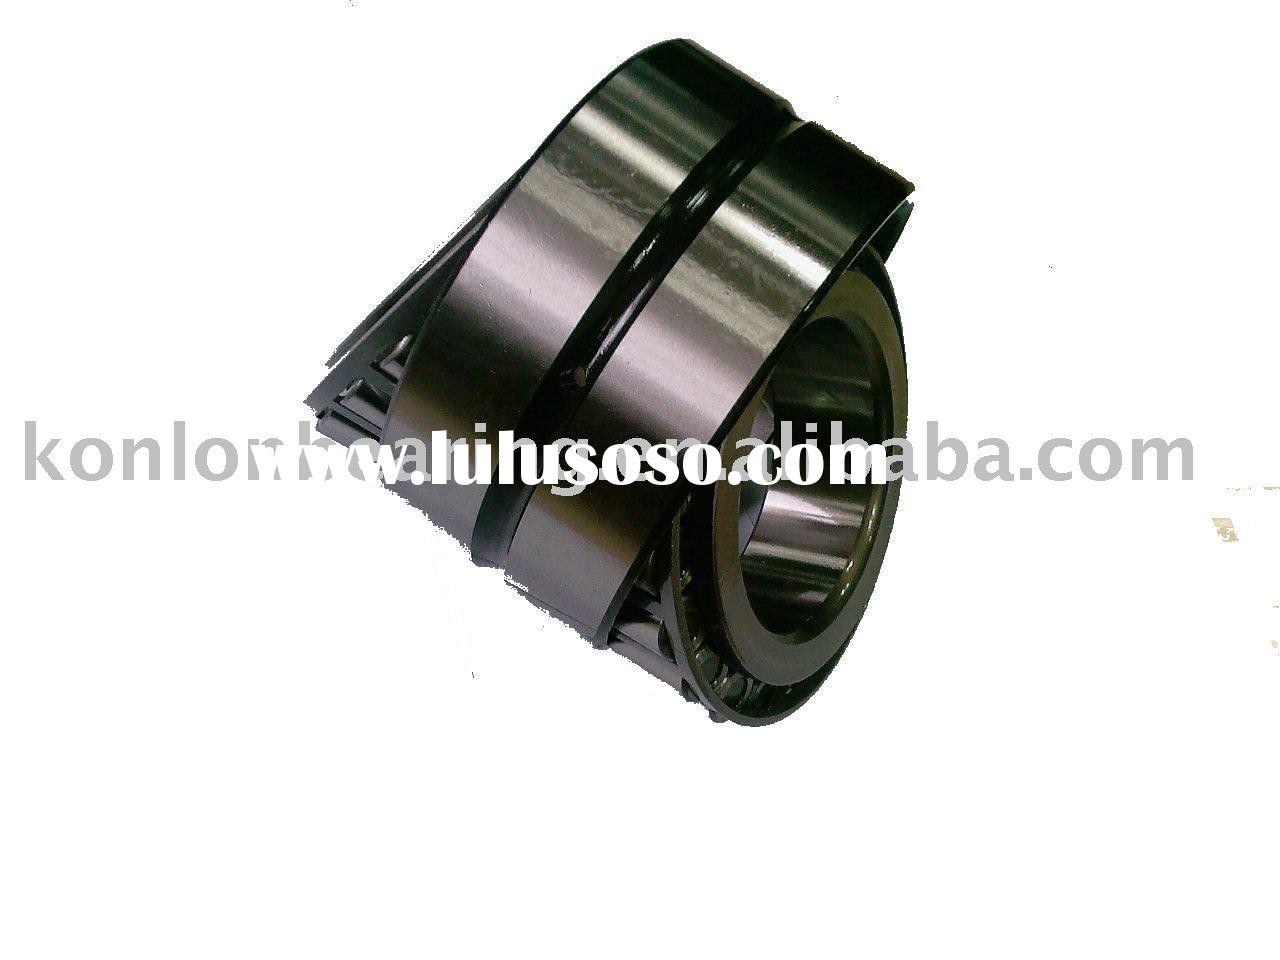 Large Size Double row taper roller bearing